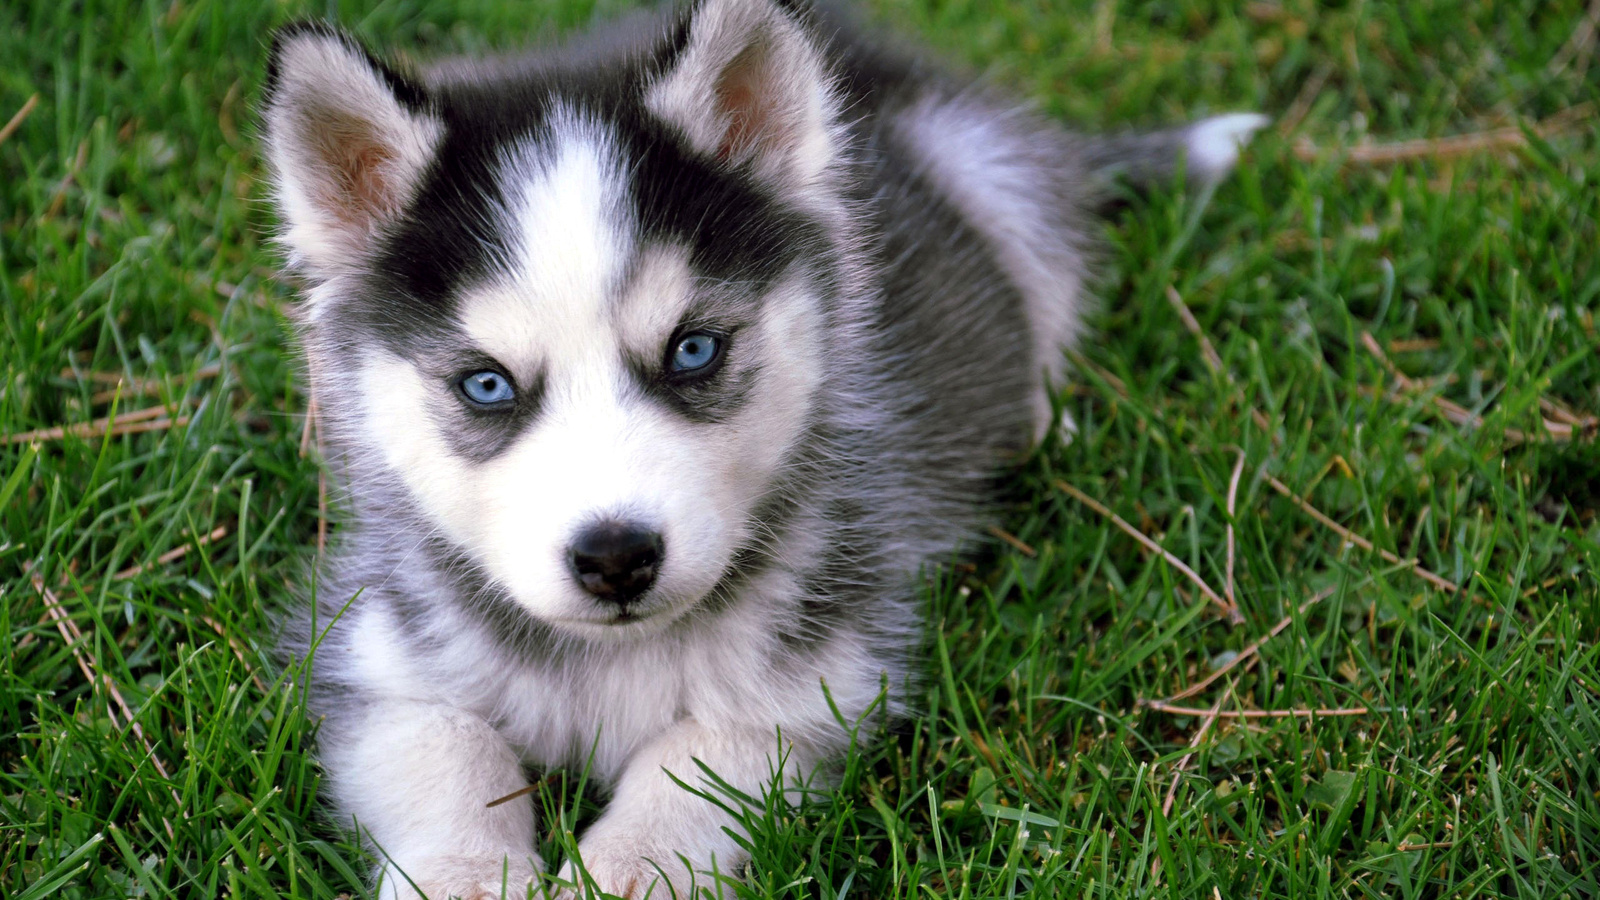 Siberian Husky Family Dogs together with Cat Lovers Husky Is Her Name further Thing further White Persian Cat besides Cats. on animal stuffed persian cat